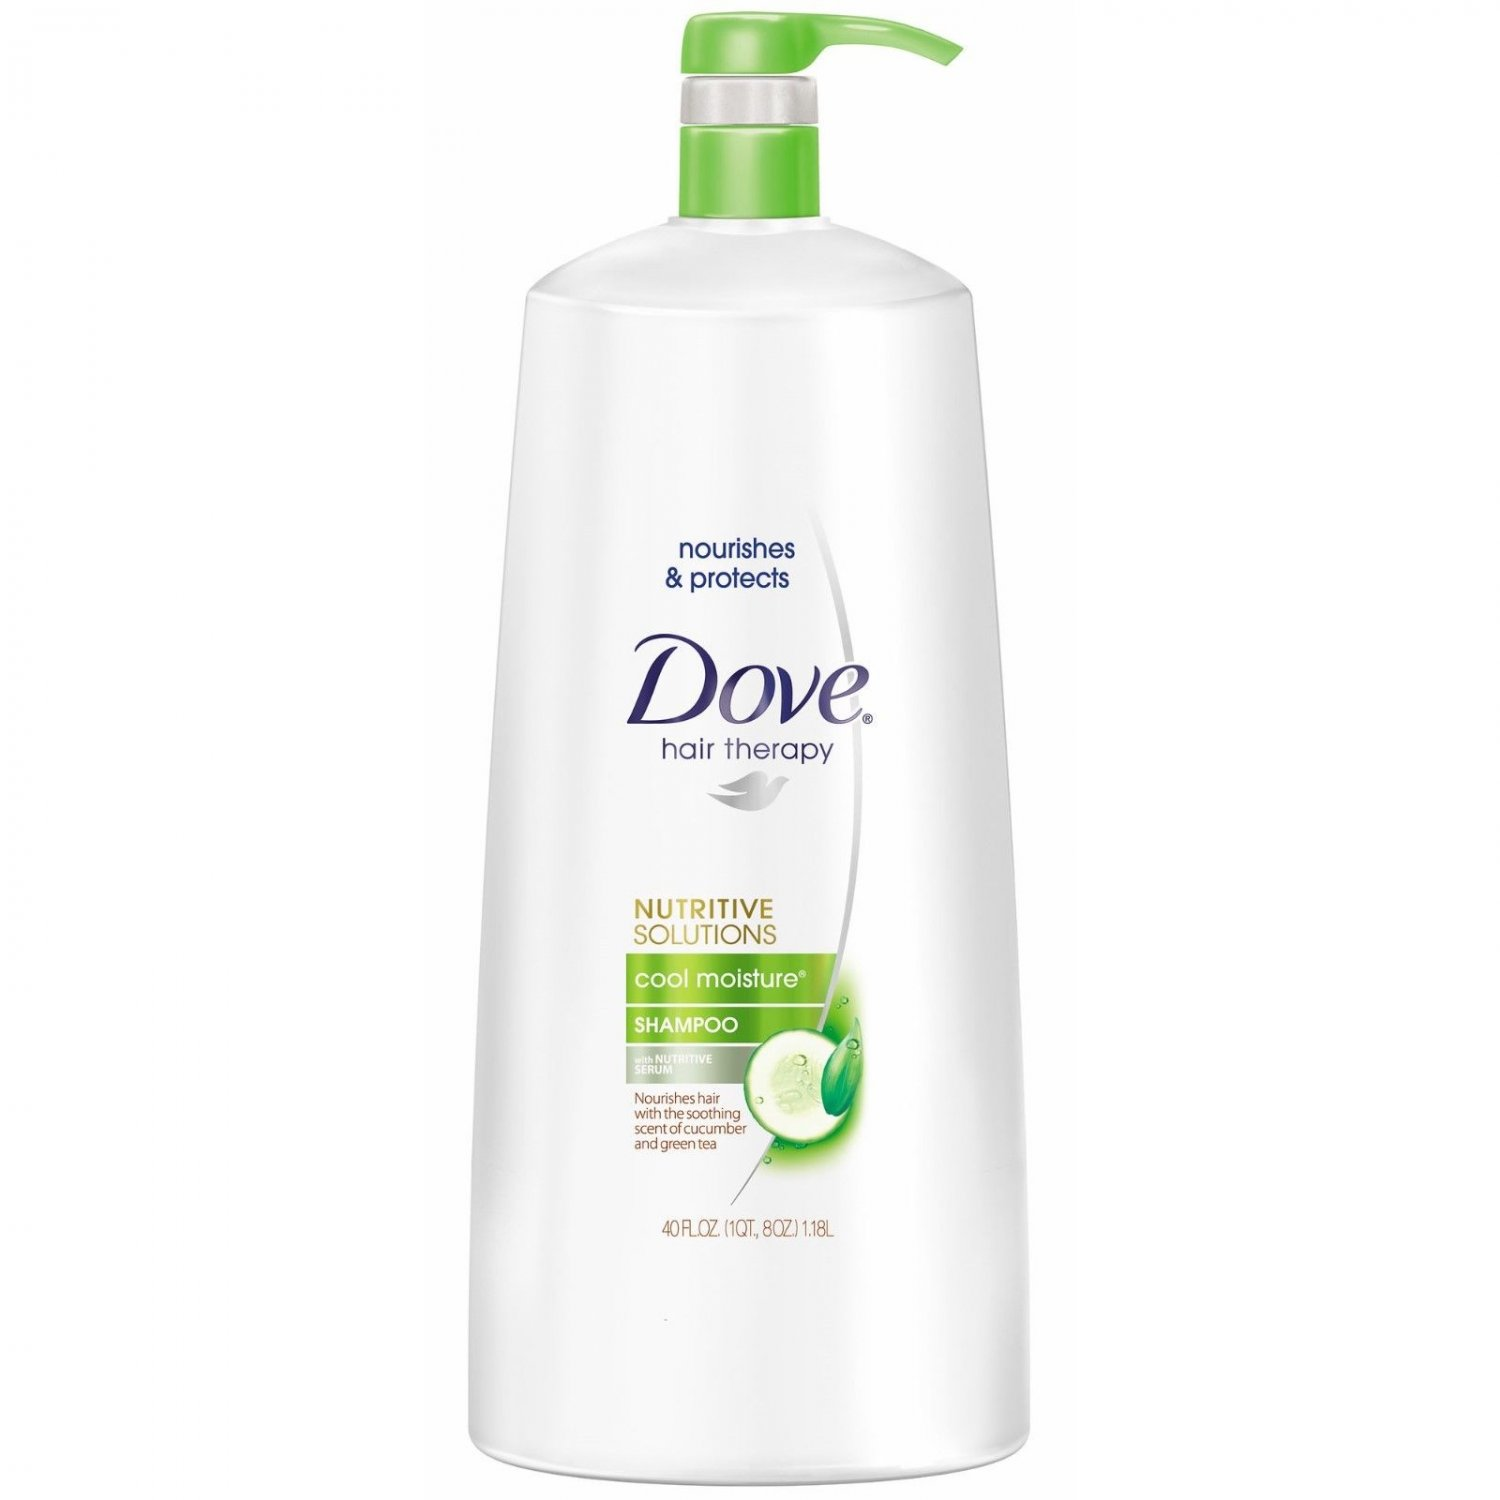 Dove Cool Moisture Shampoo, 40 oz Pump NEW